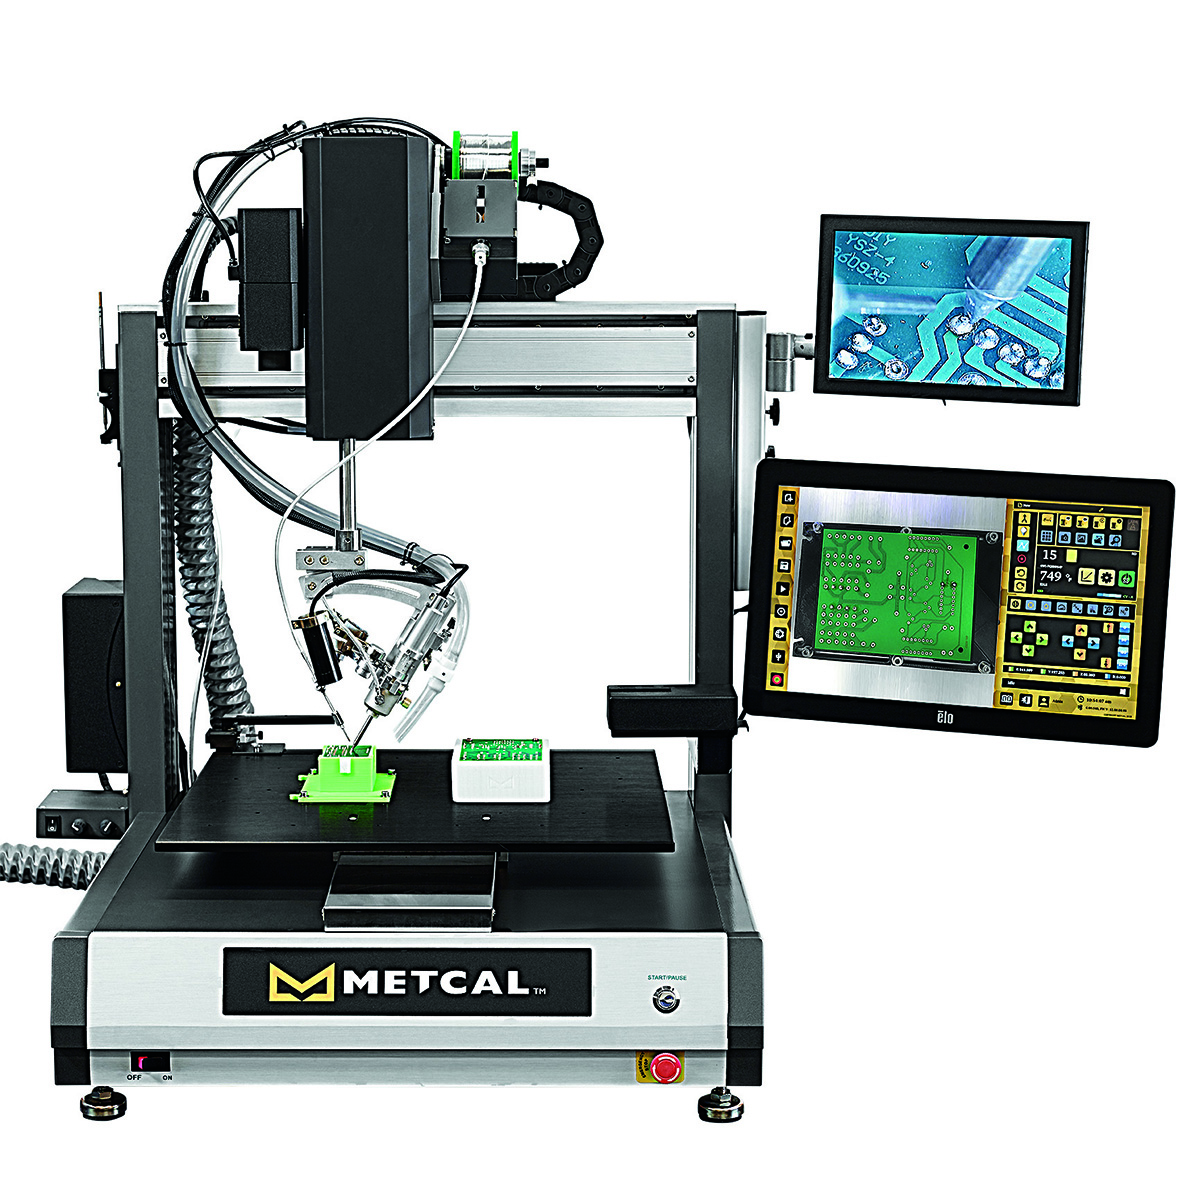 Metcal Connection Validation Robotic Soldering System